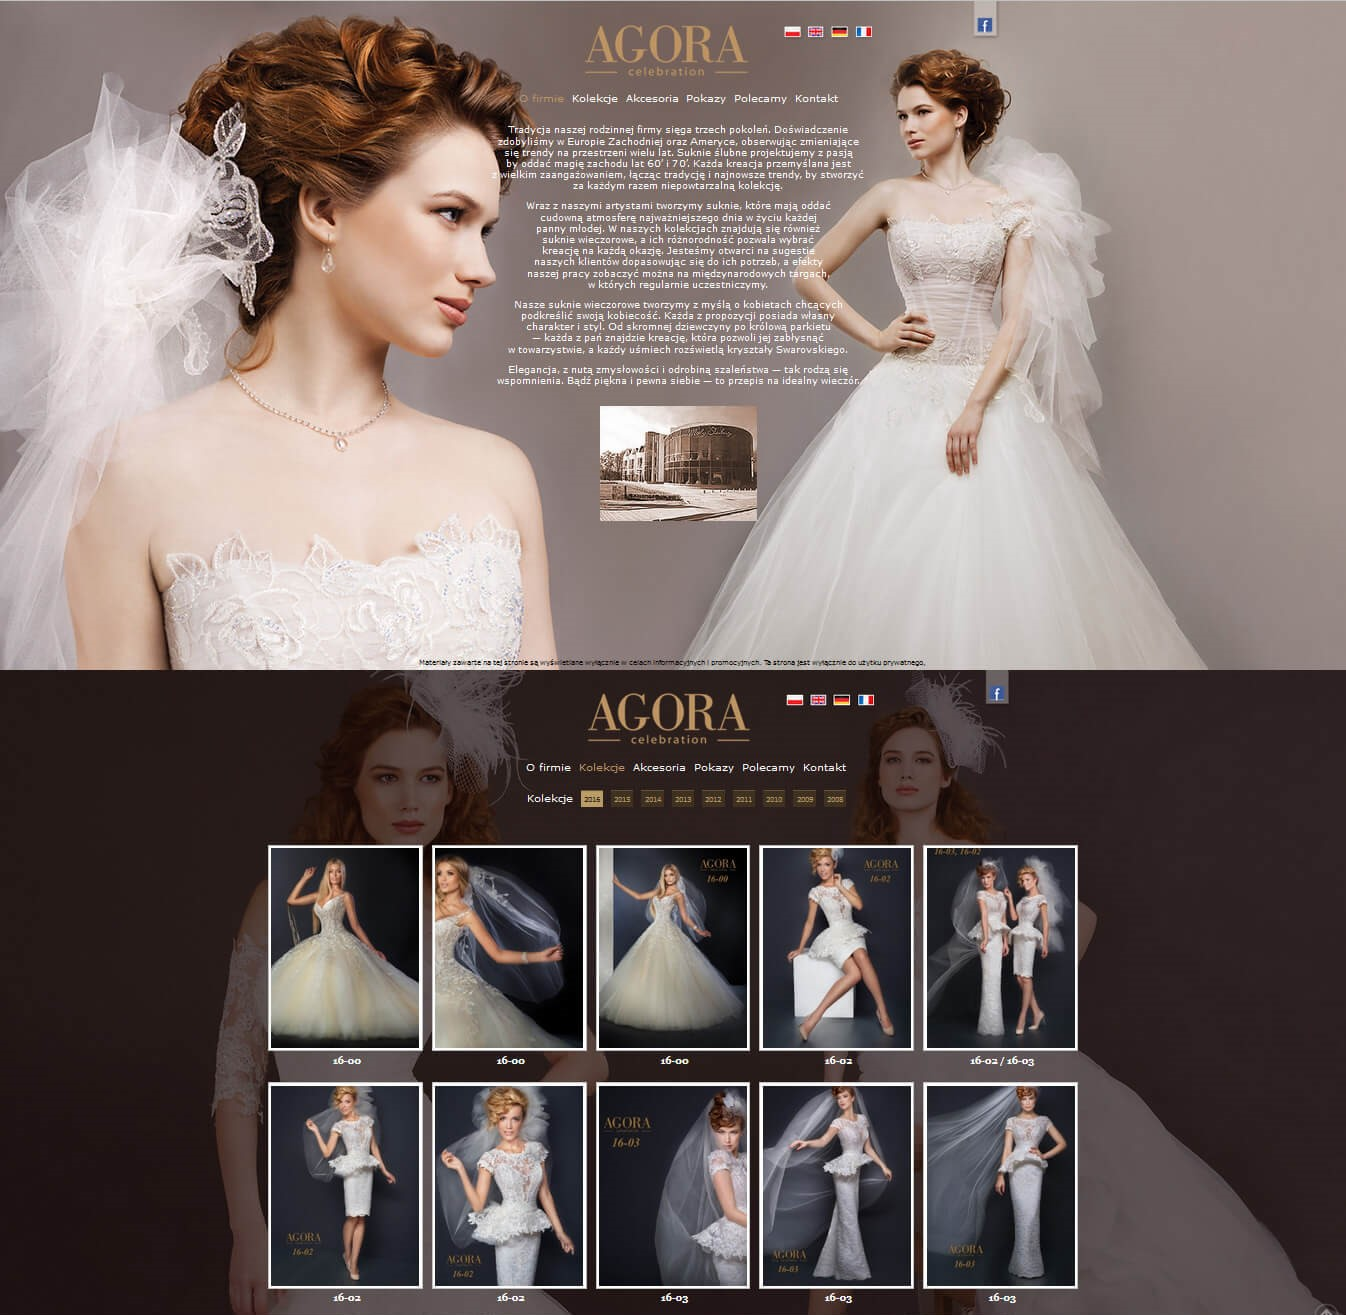 Agora<div style='clear:both;width:100%;height:0px;'></div><span class='cat'>Joomla</span>